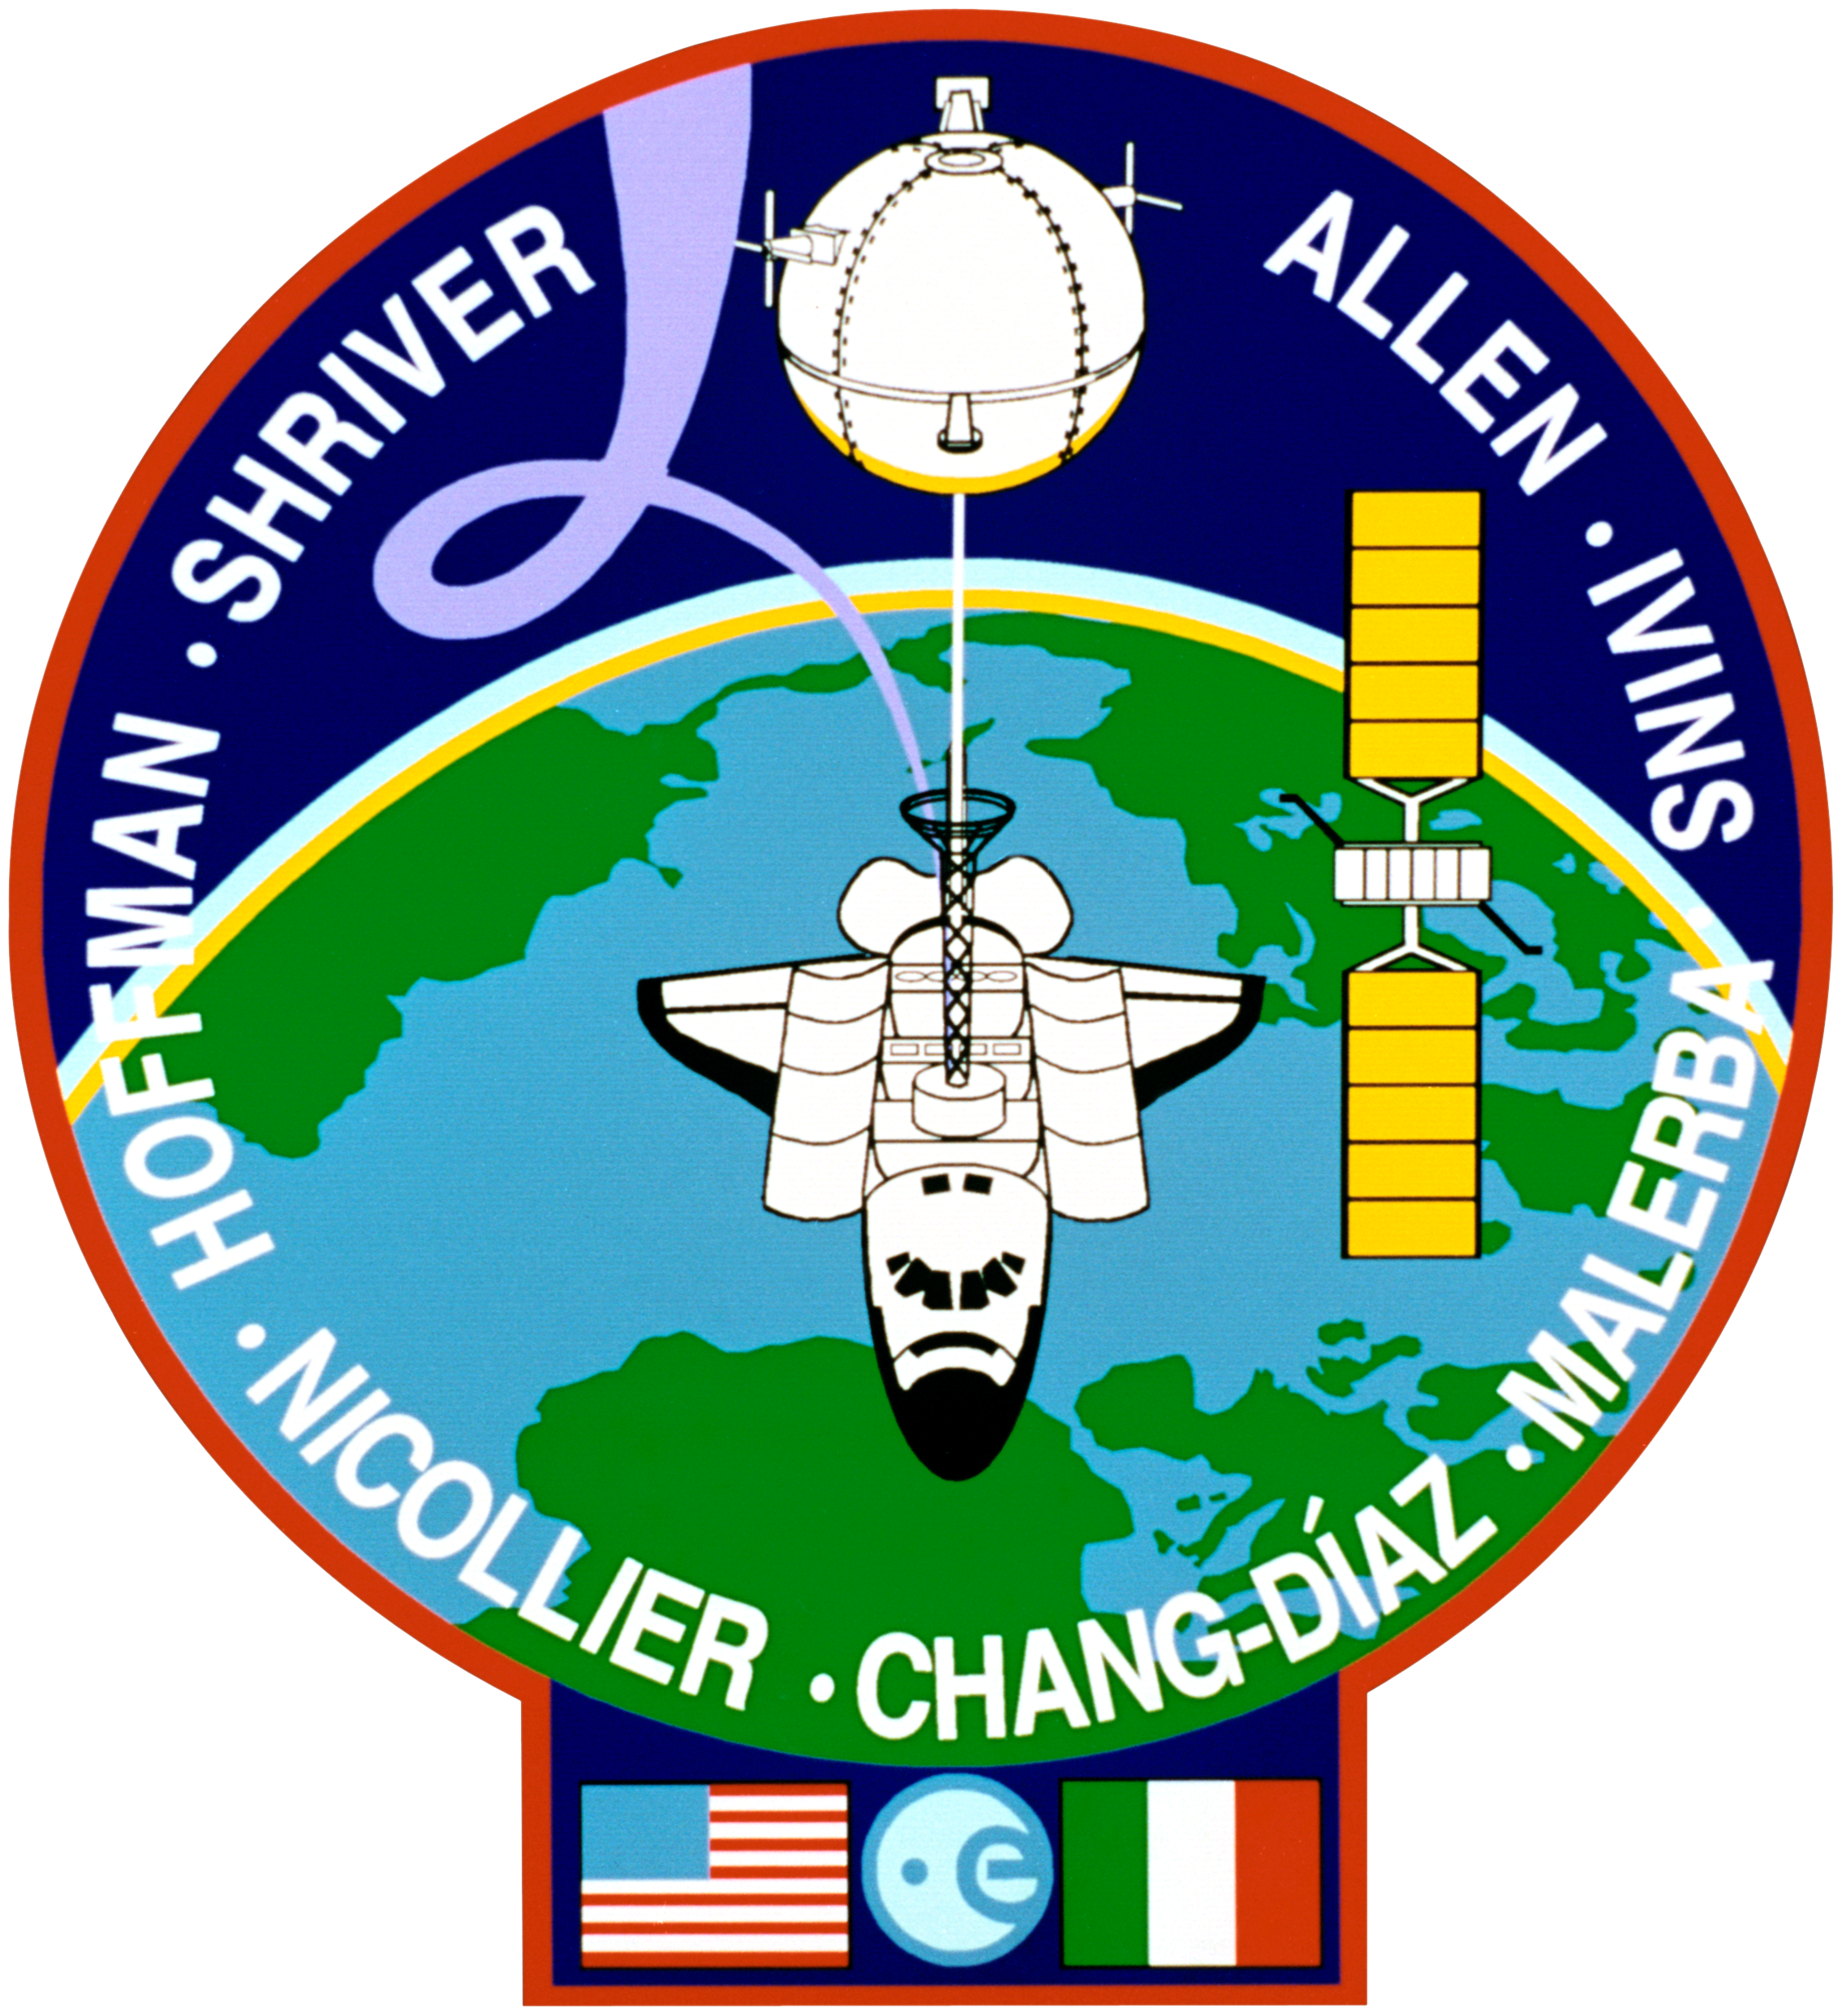 FOI collabora ufficialmente con la mostra Orbita Italia Sts-46-patch